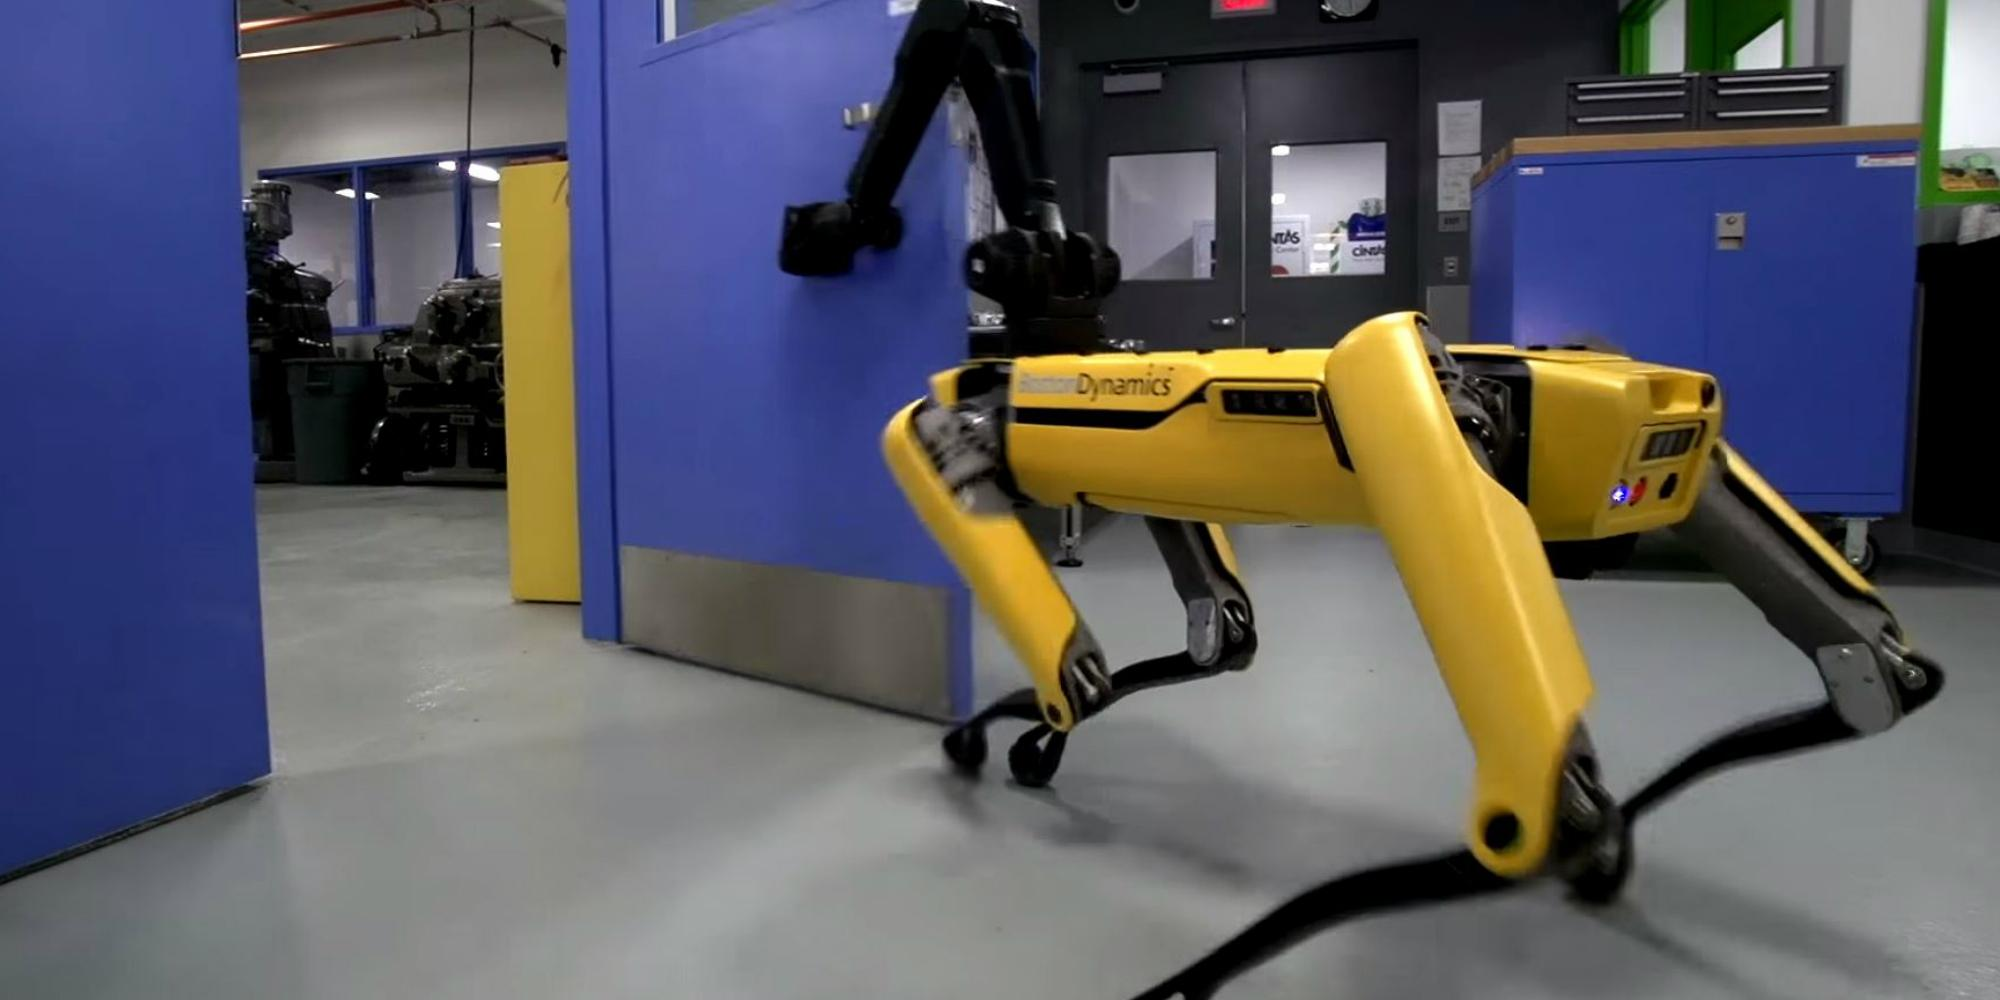 A Boston Dynamics Robot Learned A New Trick And People Are Terrified